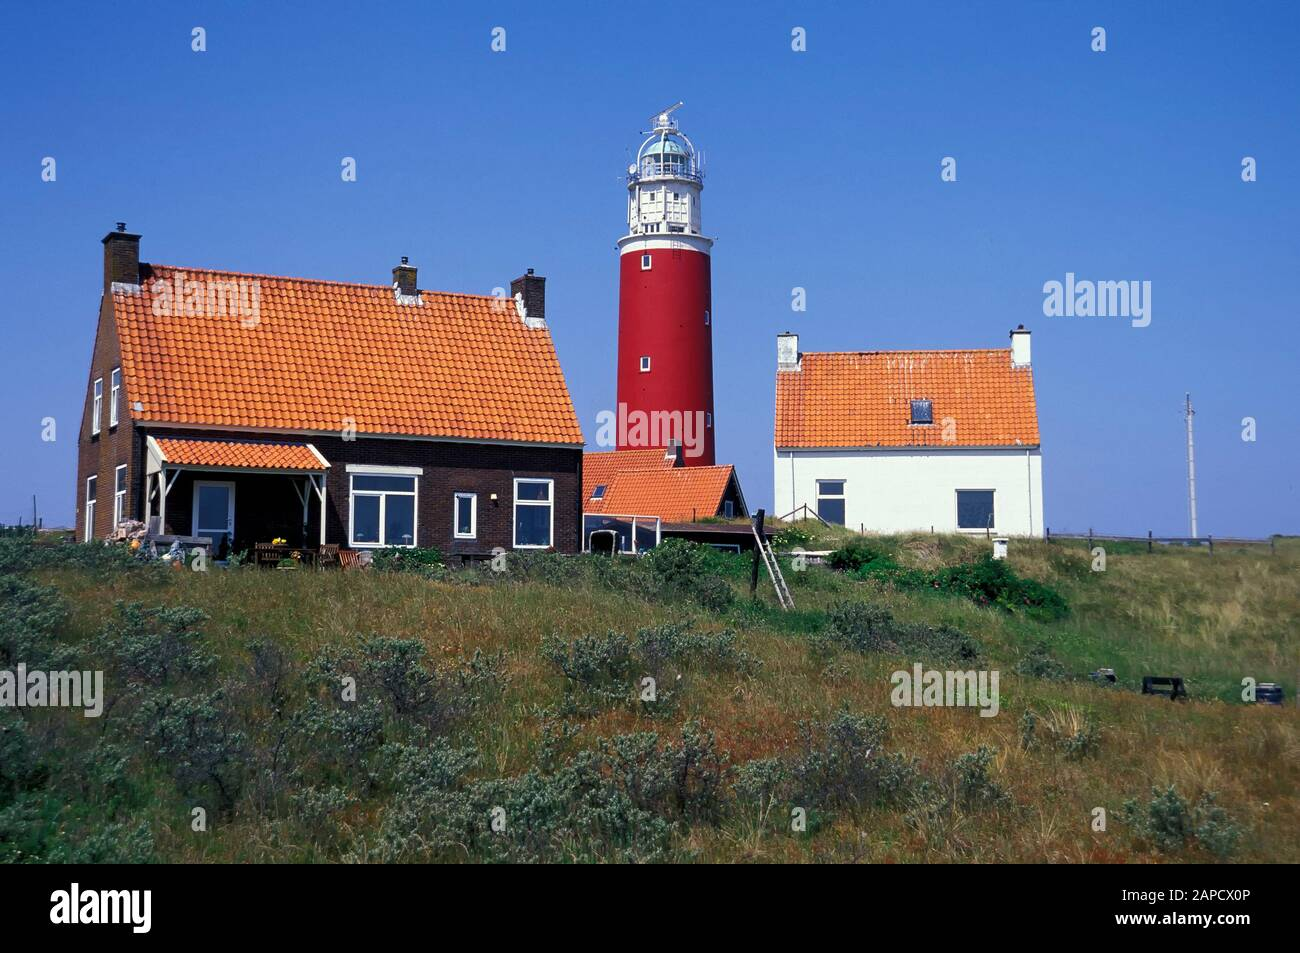 Lighthouse in the north of Texel Island, North Sea, Netherlands, Europe Stock Photo